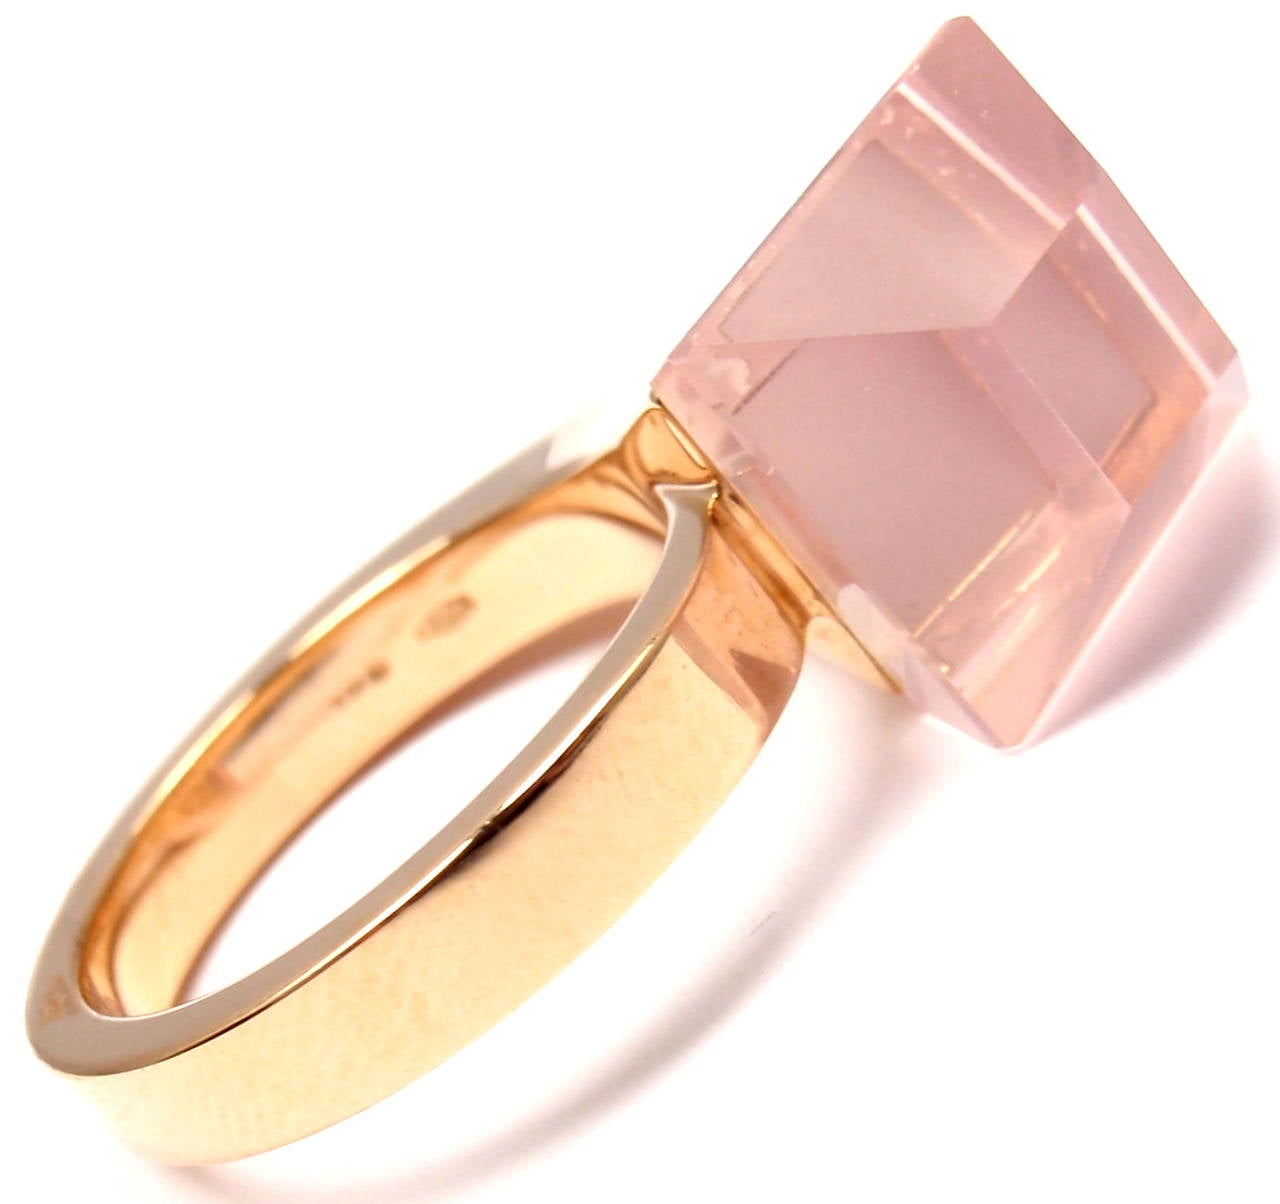 18k rose gold pink quartz French horn ring from Gucci.